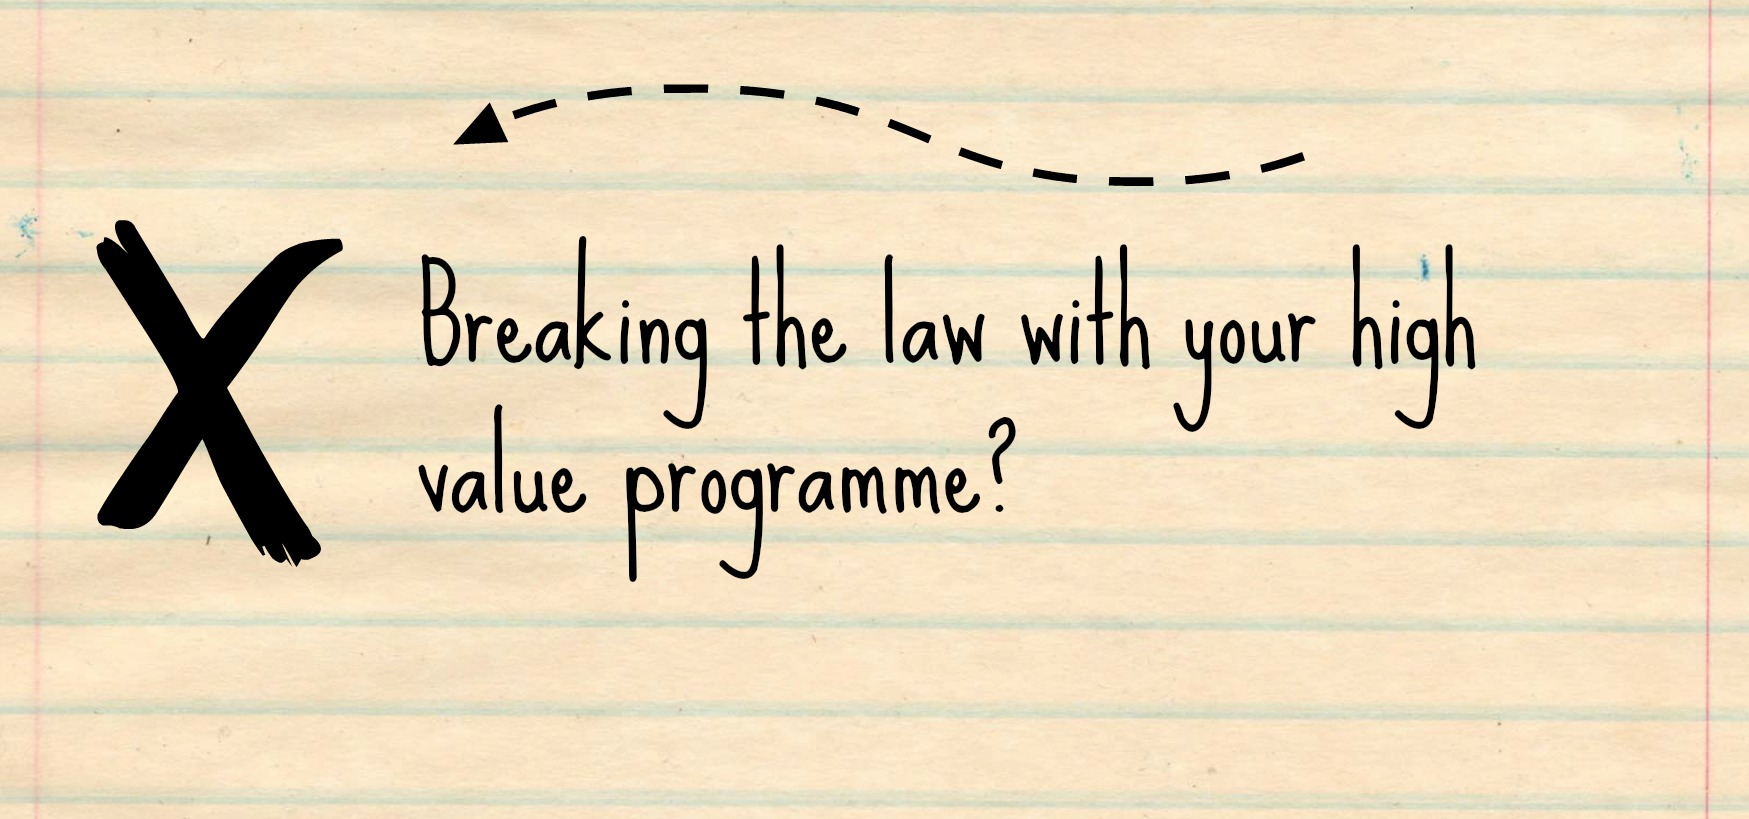 Consumer Credit Act – why your high value programme is probably breaking the law